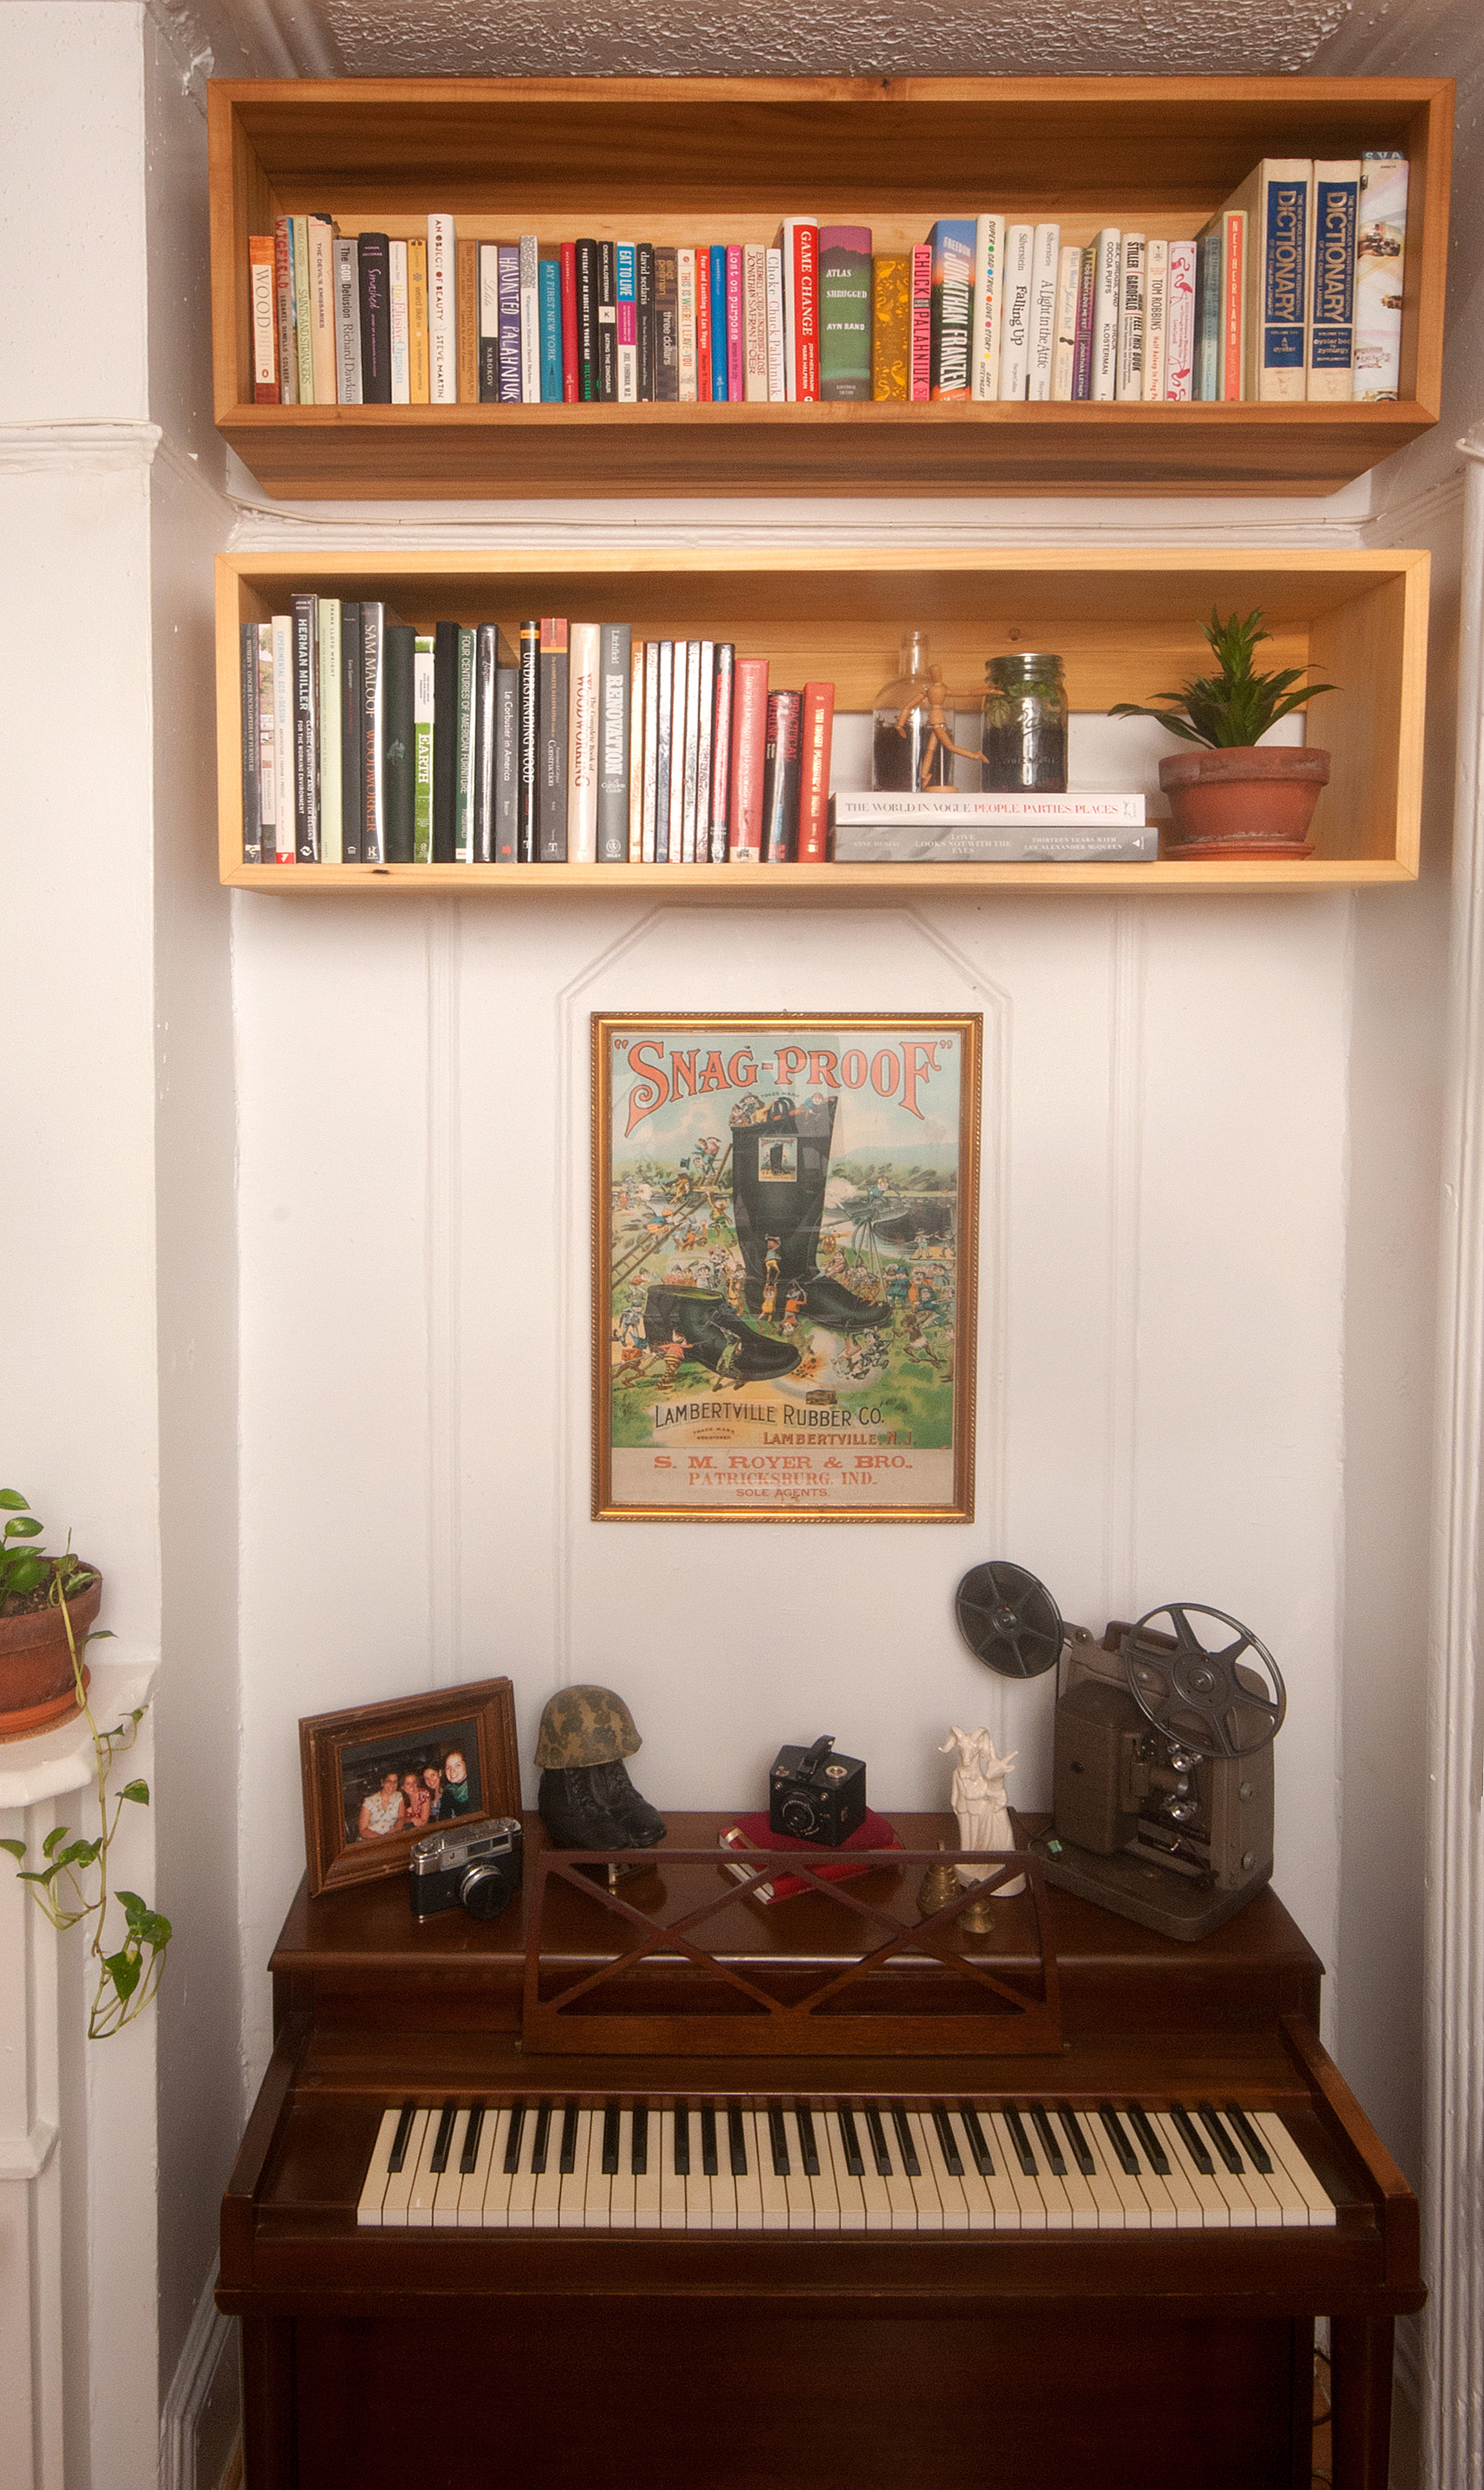 Shelves-basic-collection.jpg